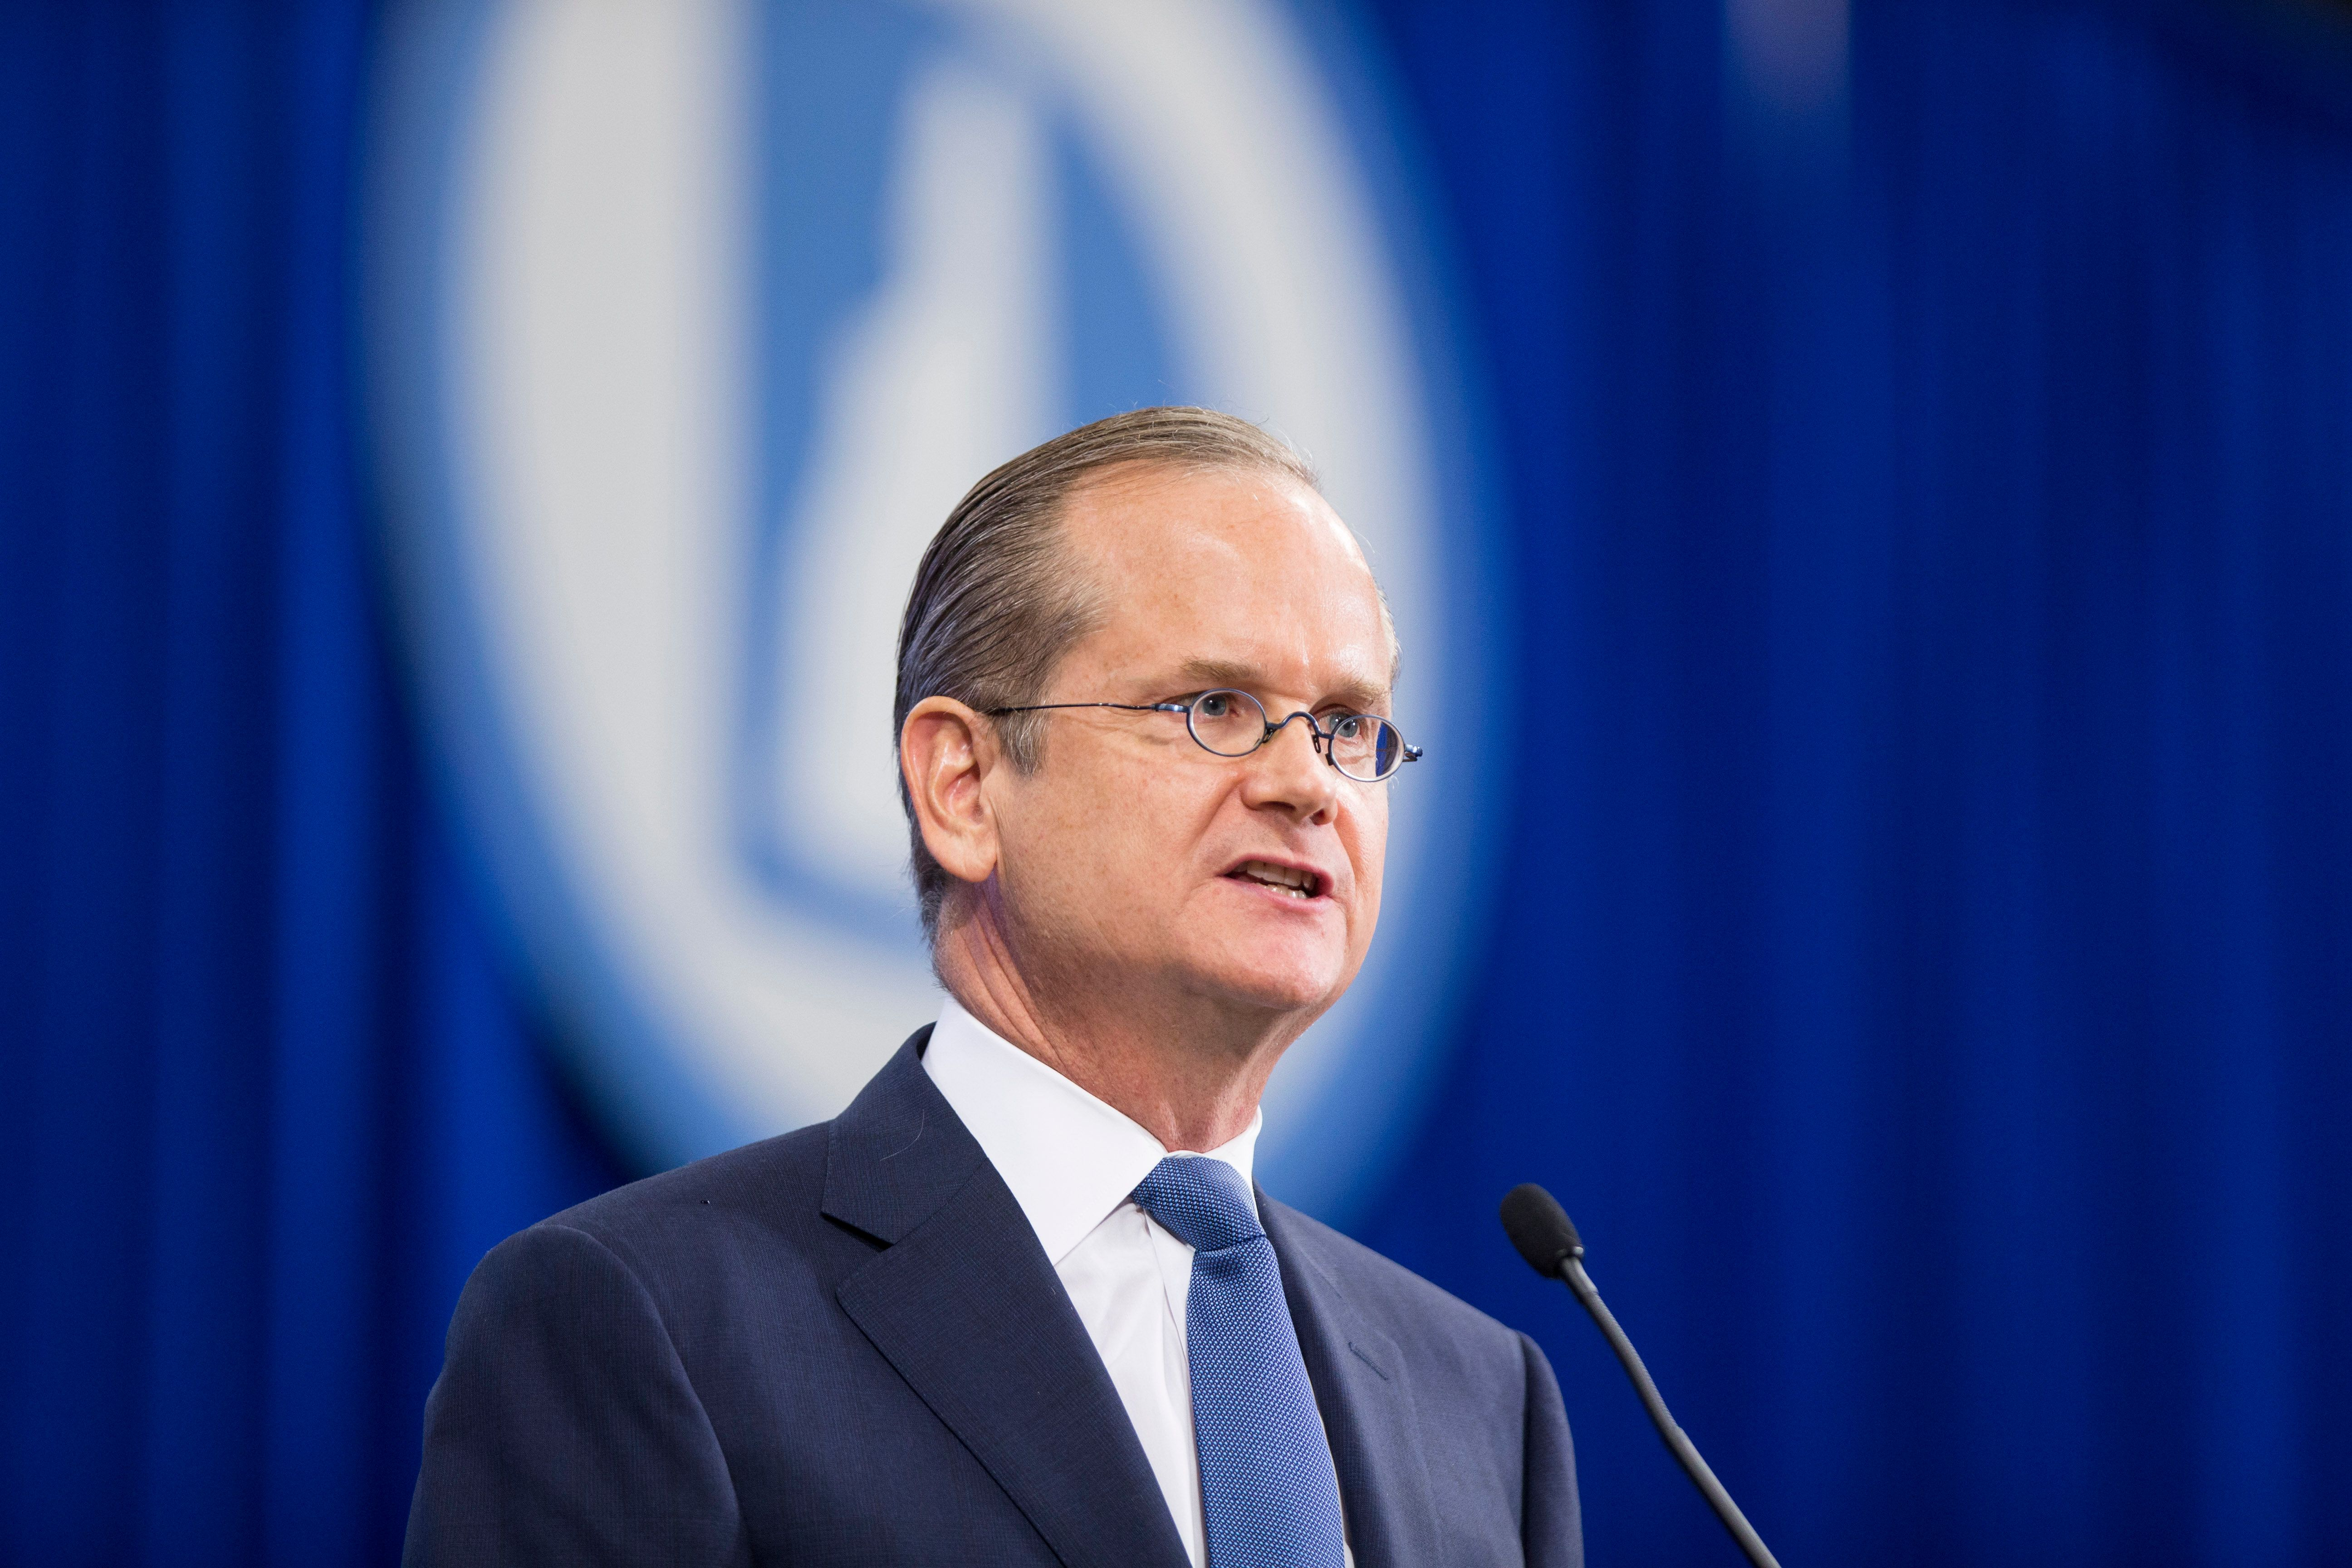 Democratic presidential candidate Lawrence Lessig has decided to withdraw a promise to resign the presidency after passing a